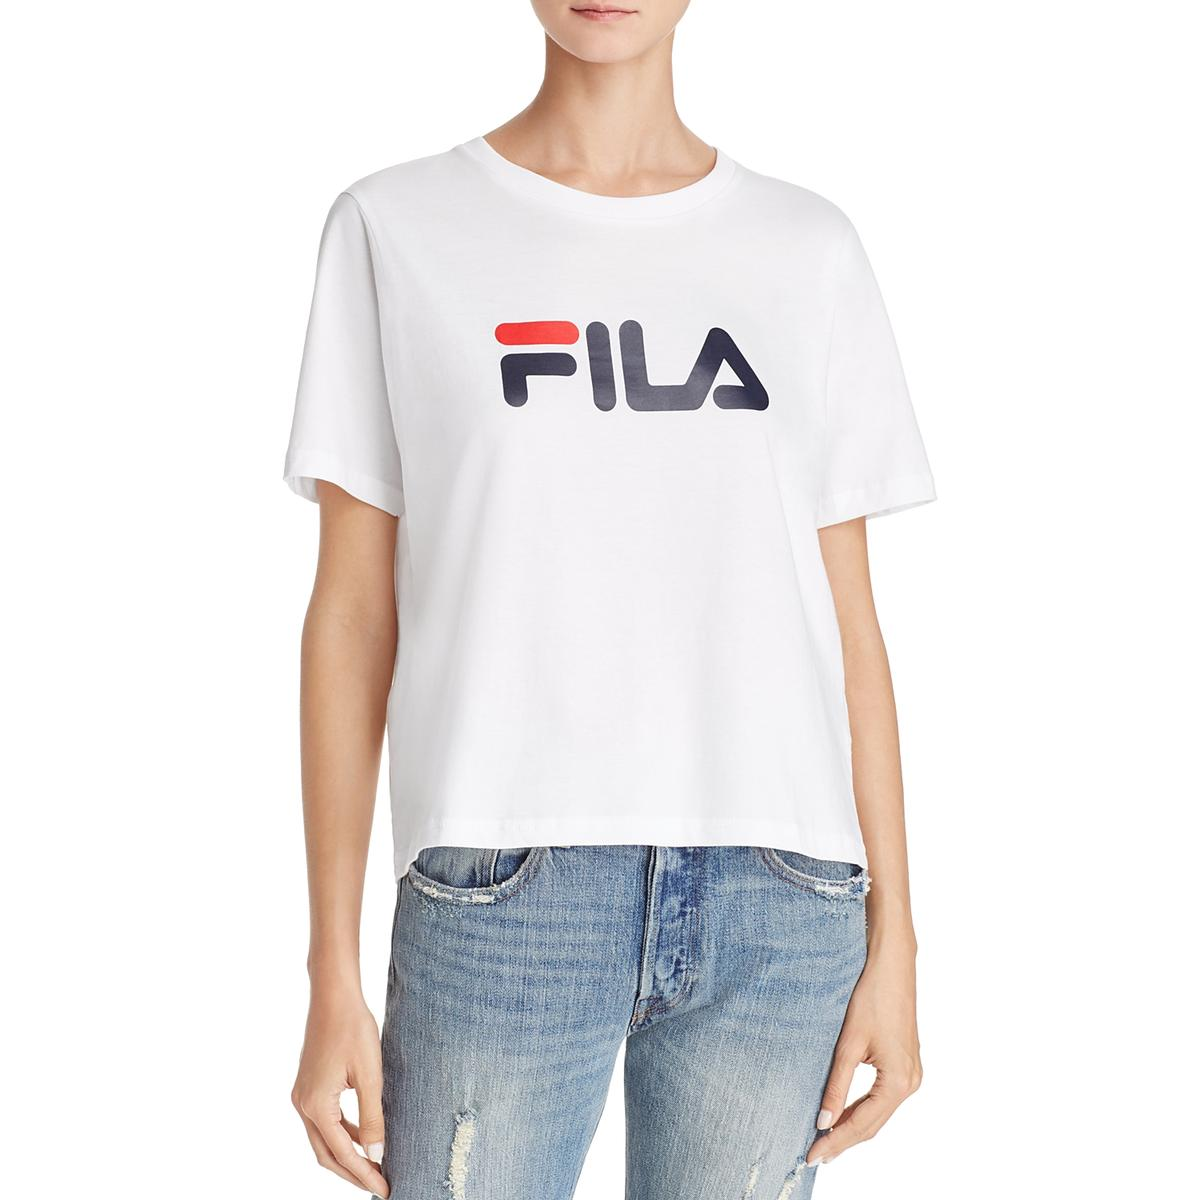 27015bb4cb Details about Fila Womens Eagle White Yoga Fitness Running T-Shirt Athletic  L BHFO 8853